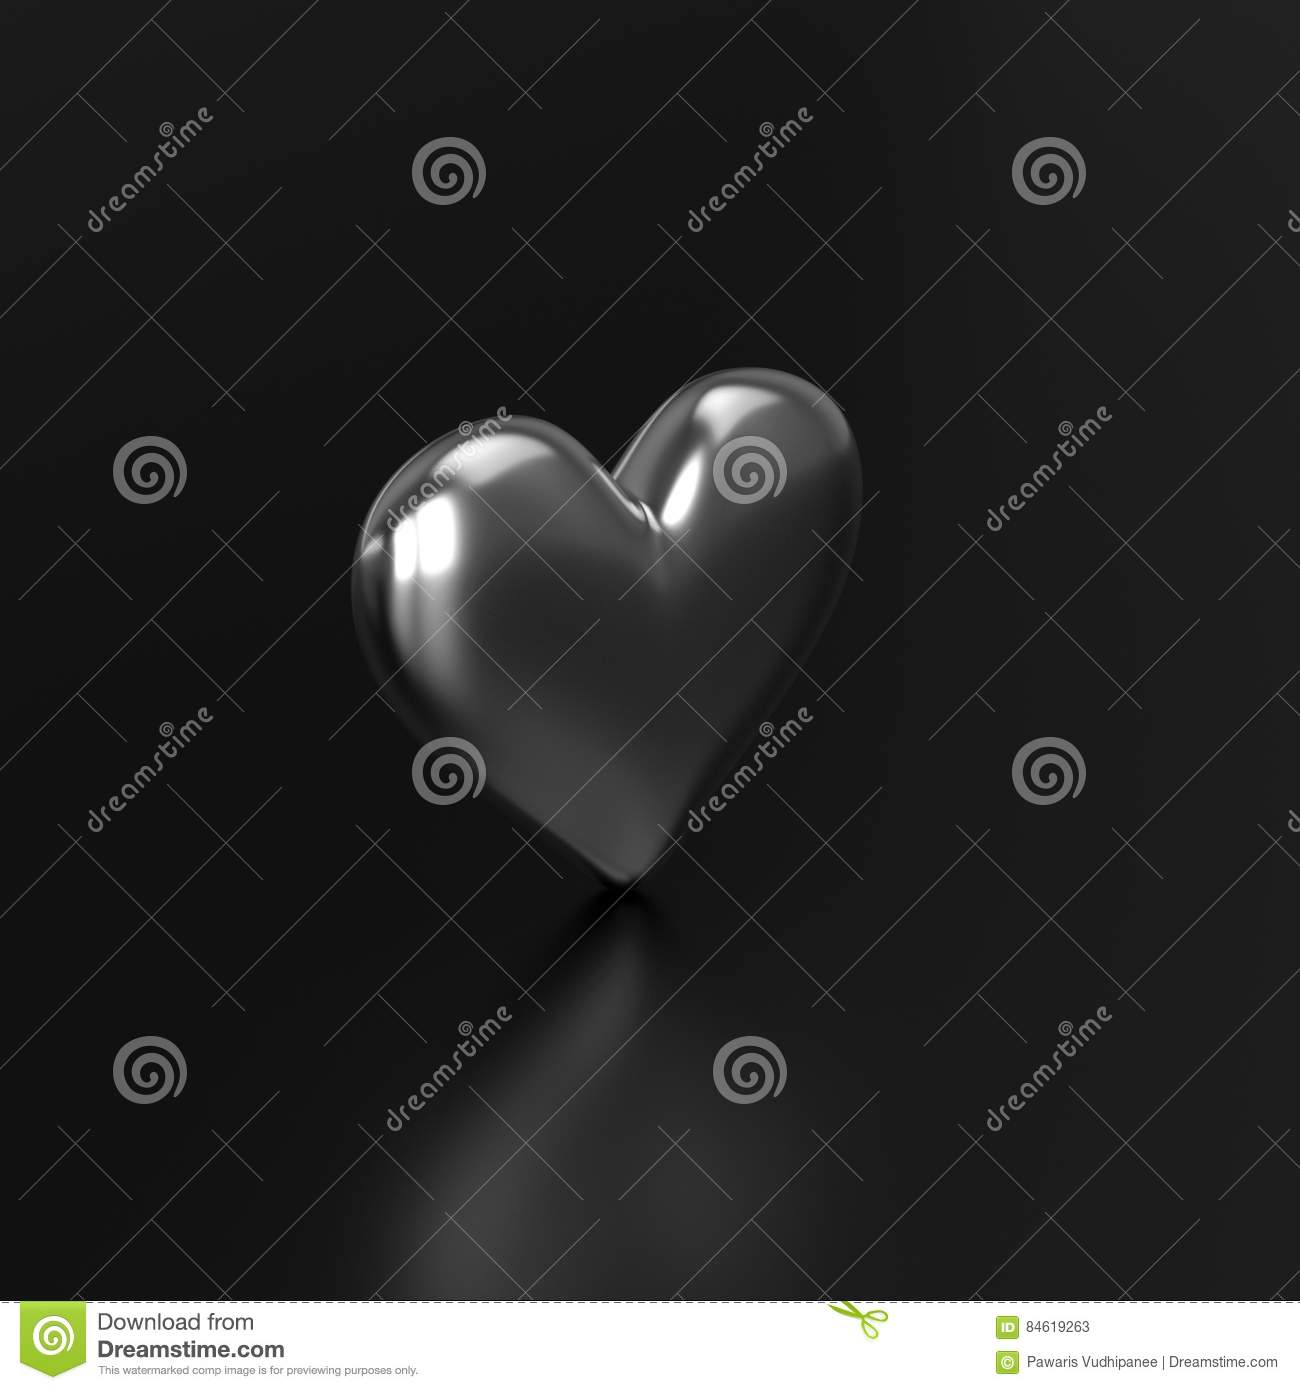 Silver bling background free bling vector art 412 free downloads - Jpg 1300x1390 Silver Heart Black Background Download Image